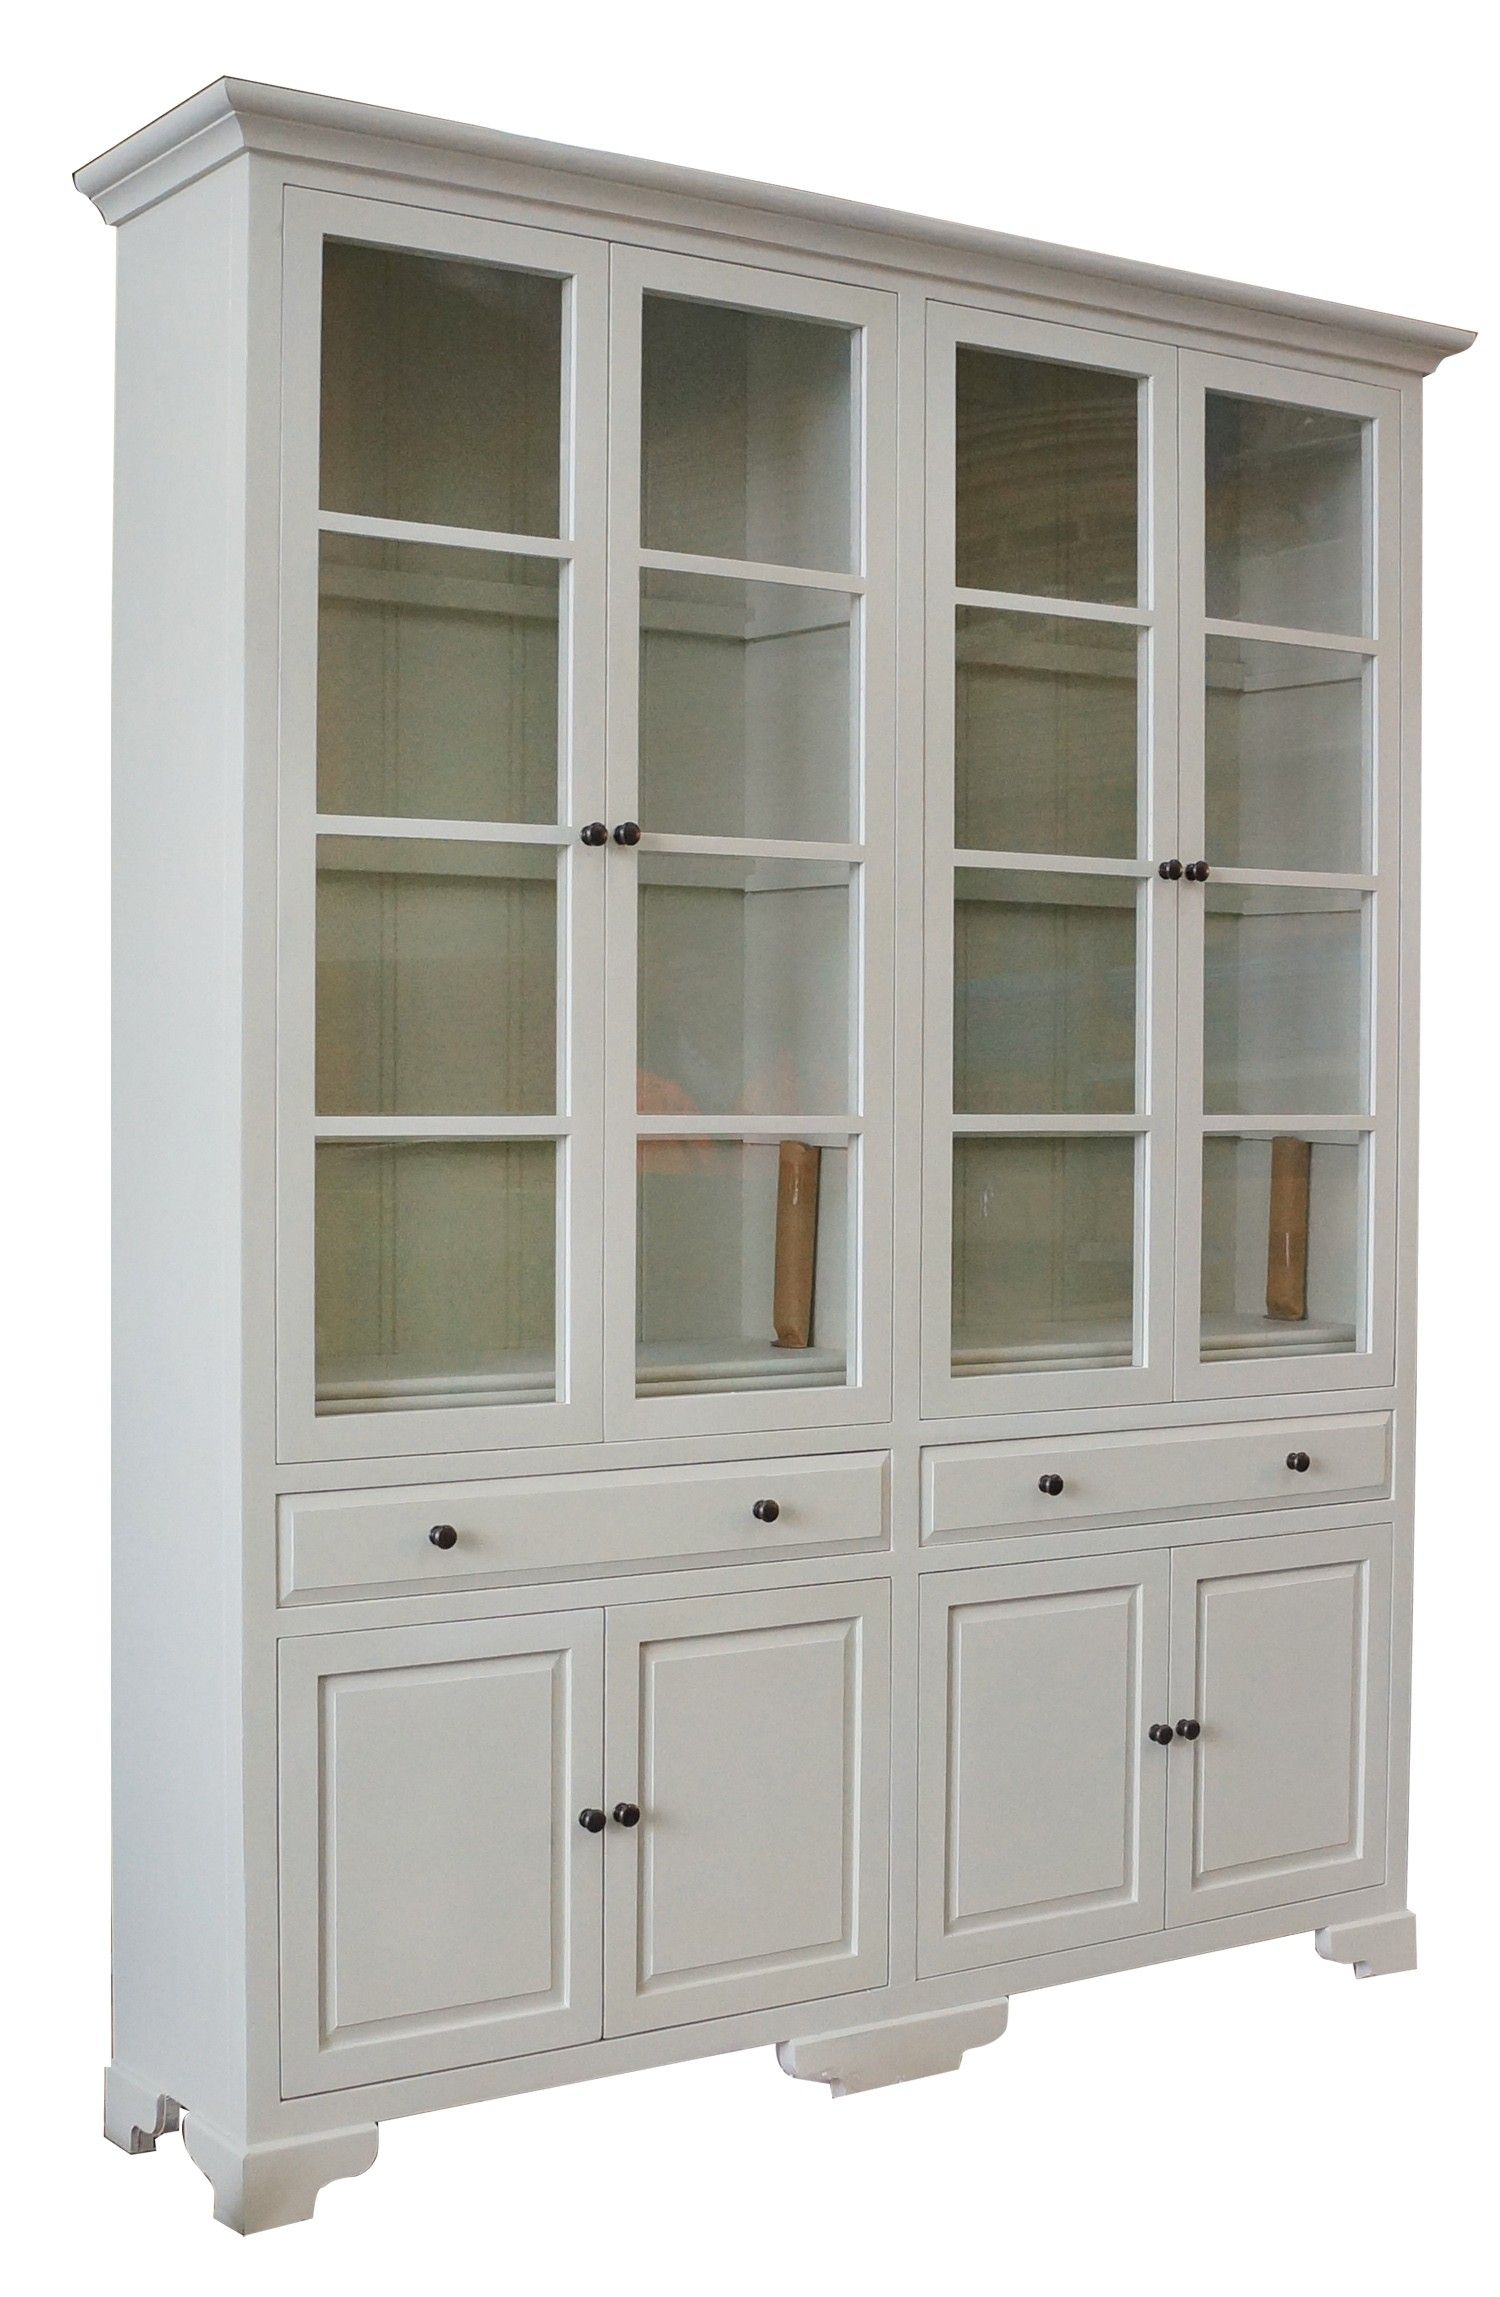 French Provincial Cuisine French Provincial Furniture Classic Display Cabinet